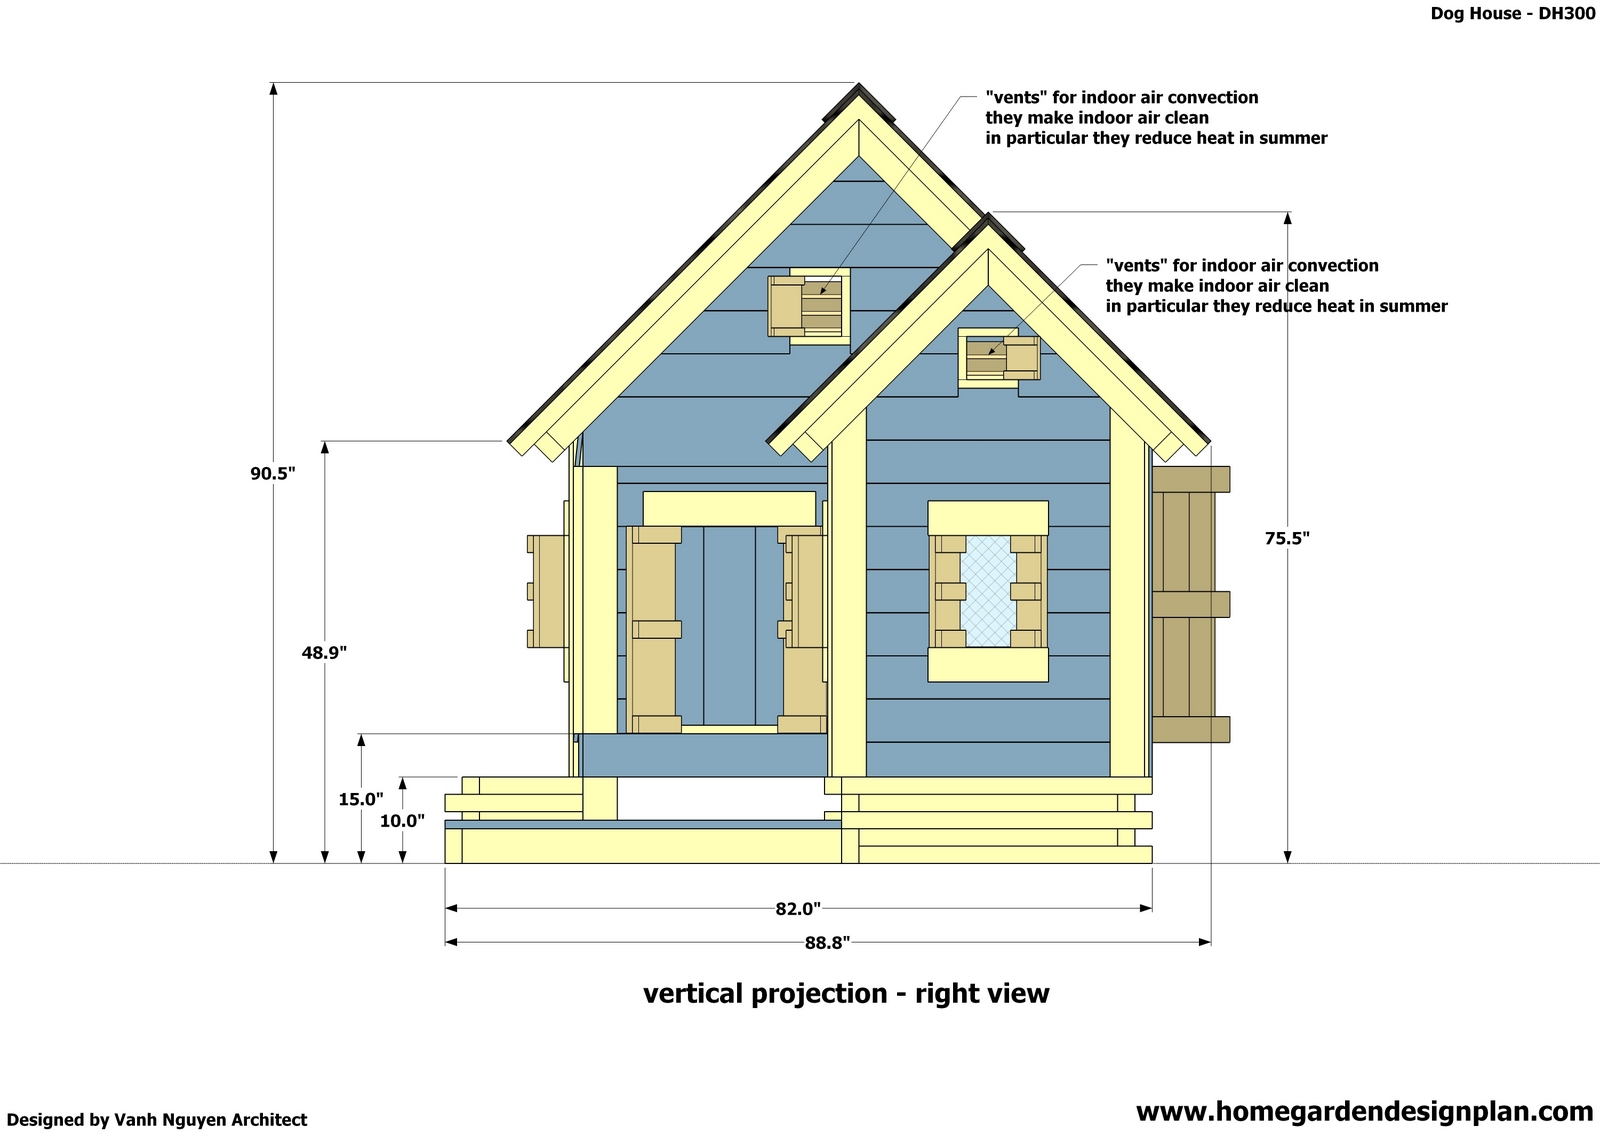 Elegant Home Garden Plans: DH300   Dog House Plans Free   How To Build An Insulated  Dog House   Insulated Dog House Plans For Construction